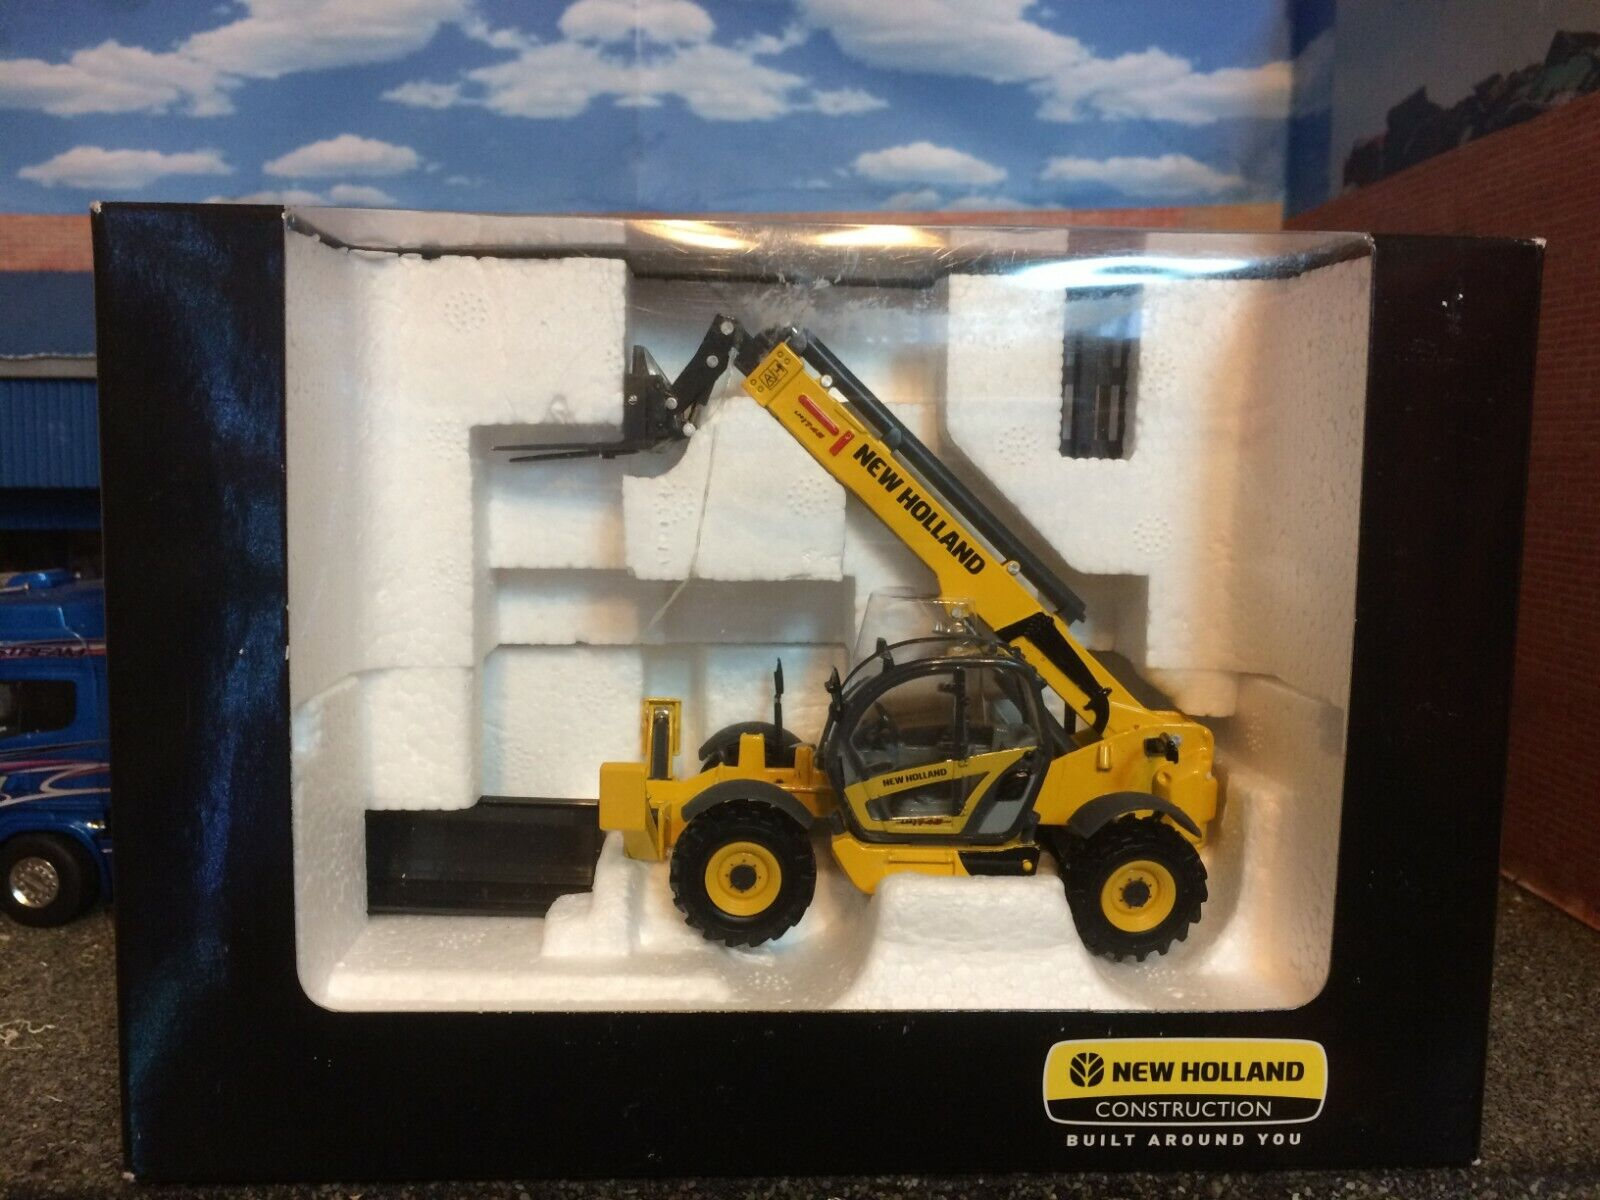 1 50 Scale ROS 00192 New Holland LM 1745 Turbo Telehandler  Brand New Heavy Haul